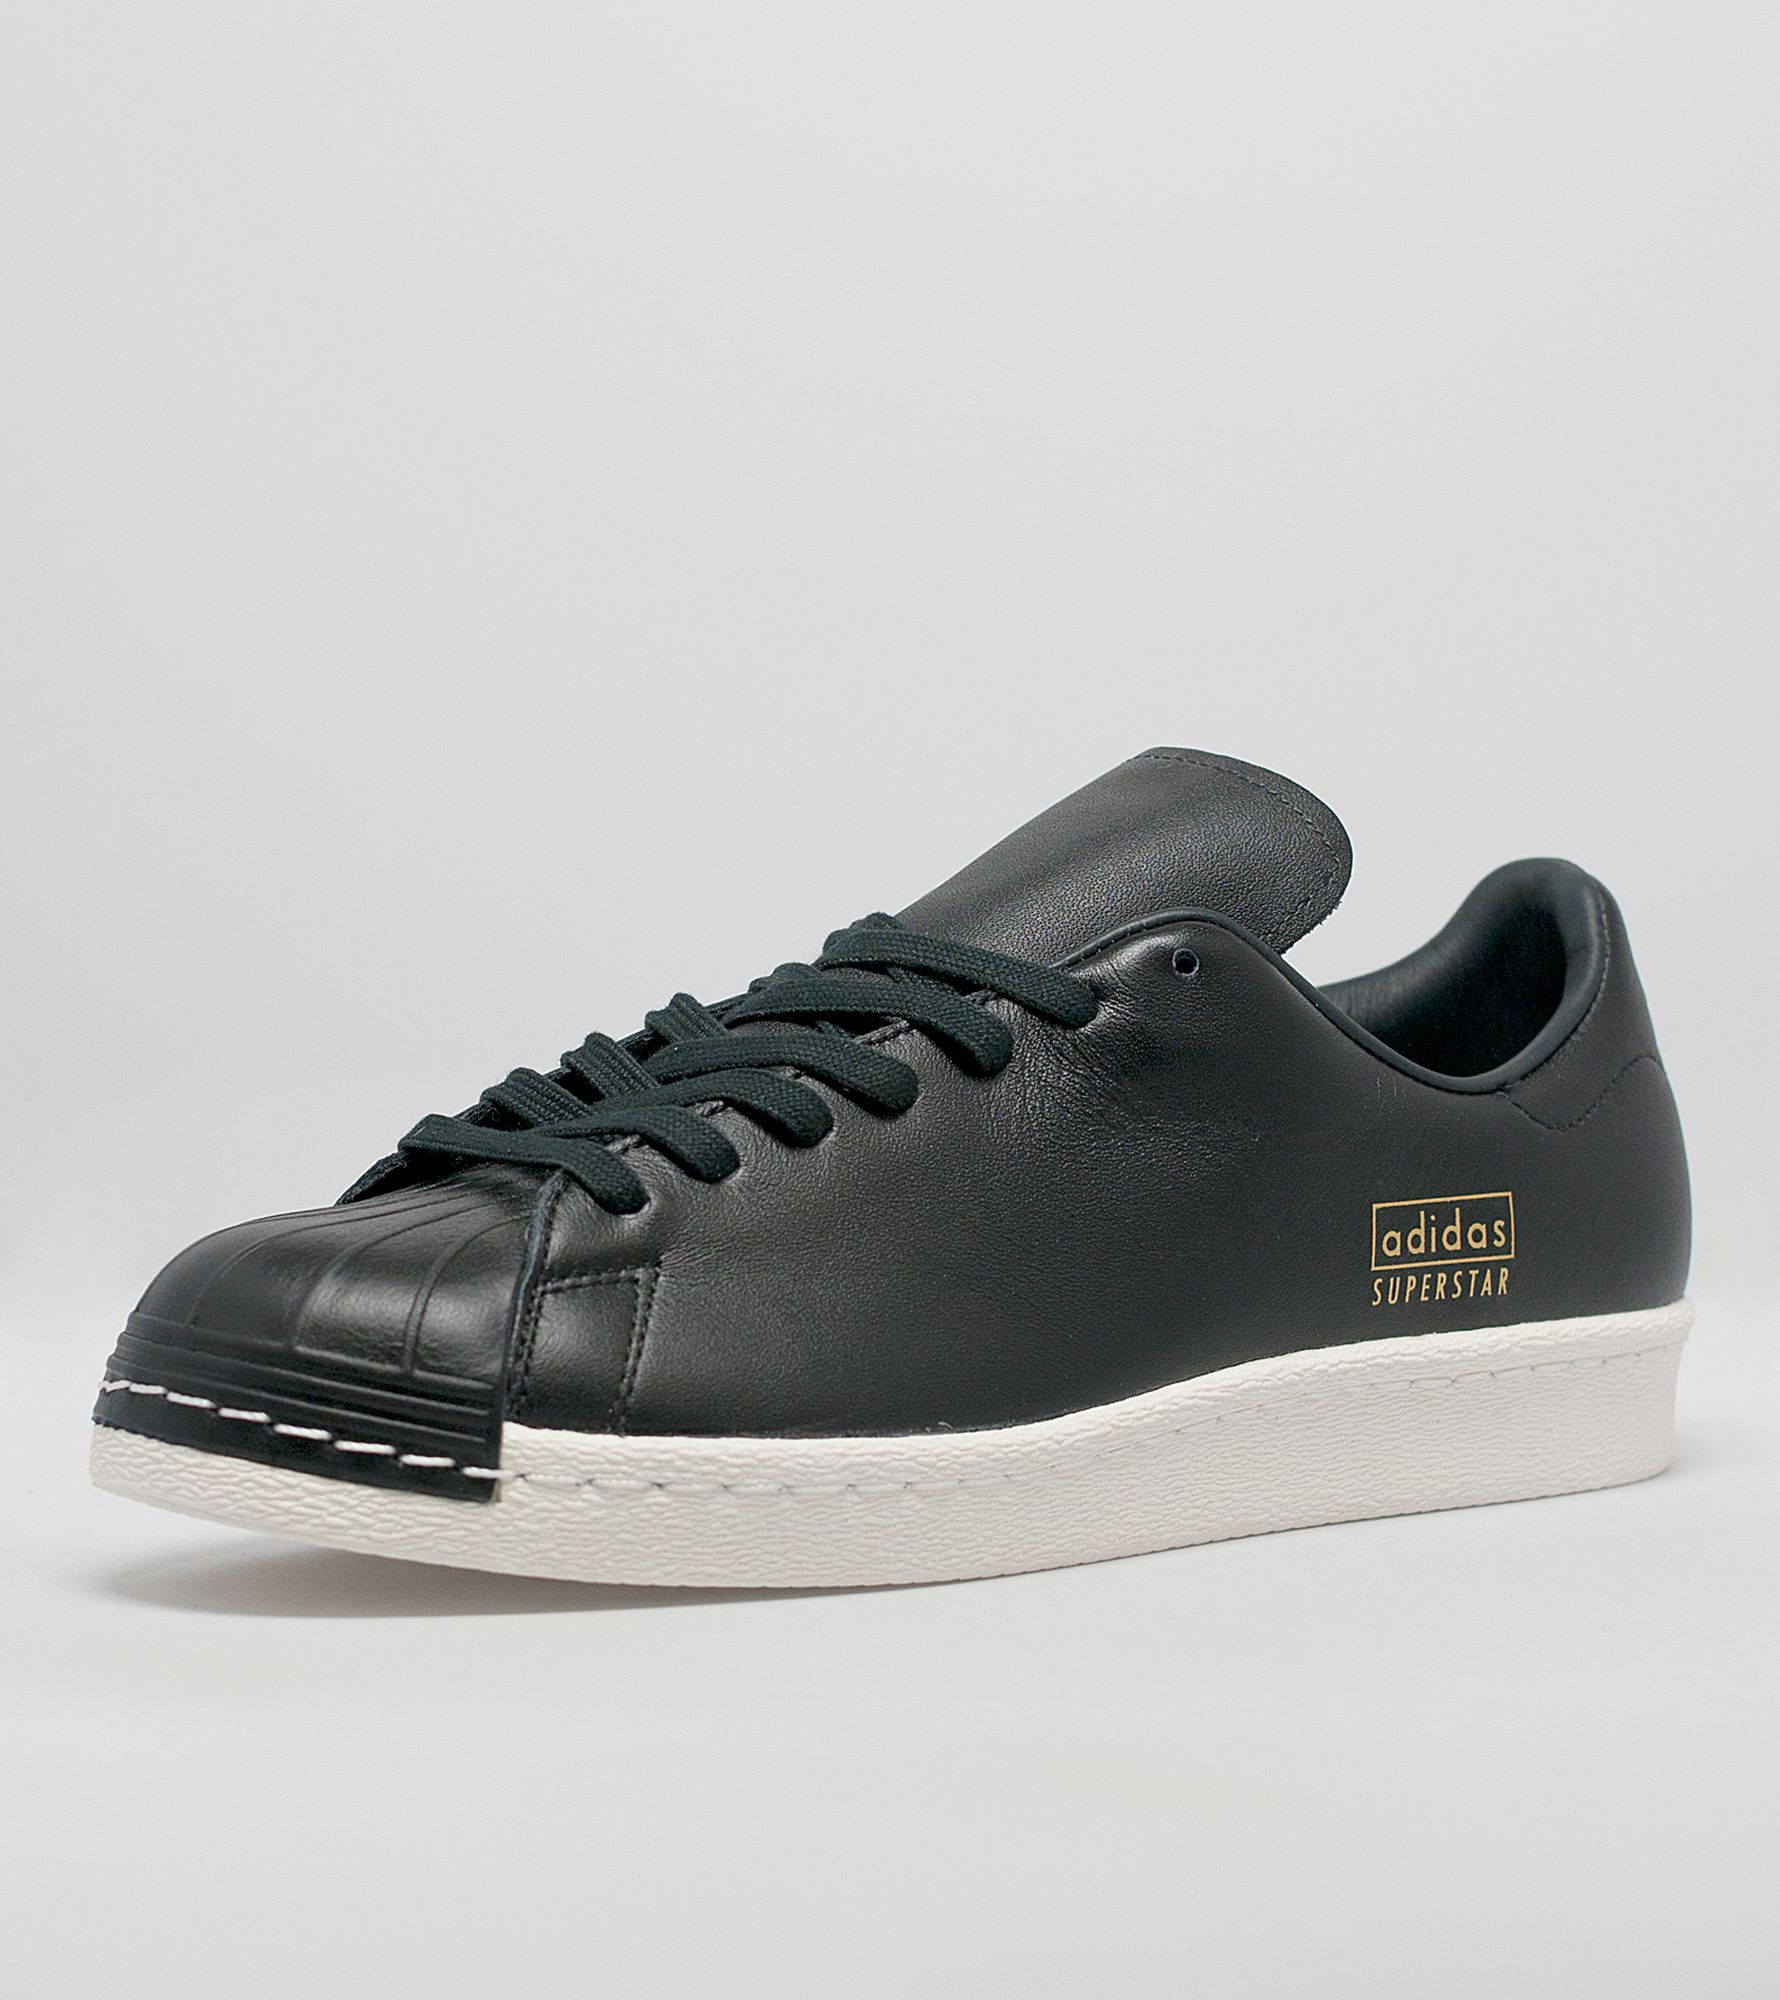 pjamj adidas Originals Superstar 80s Clean | Size?